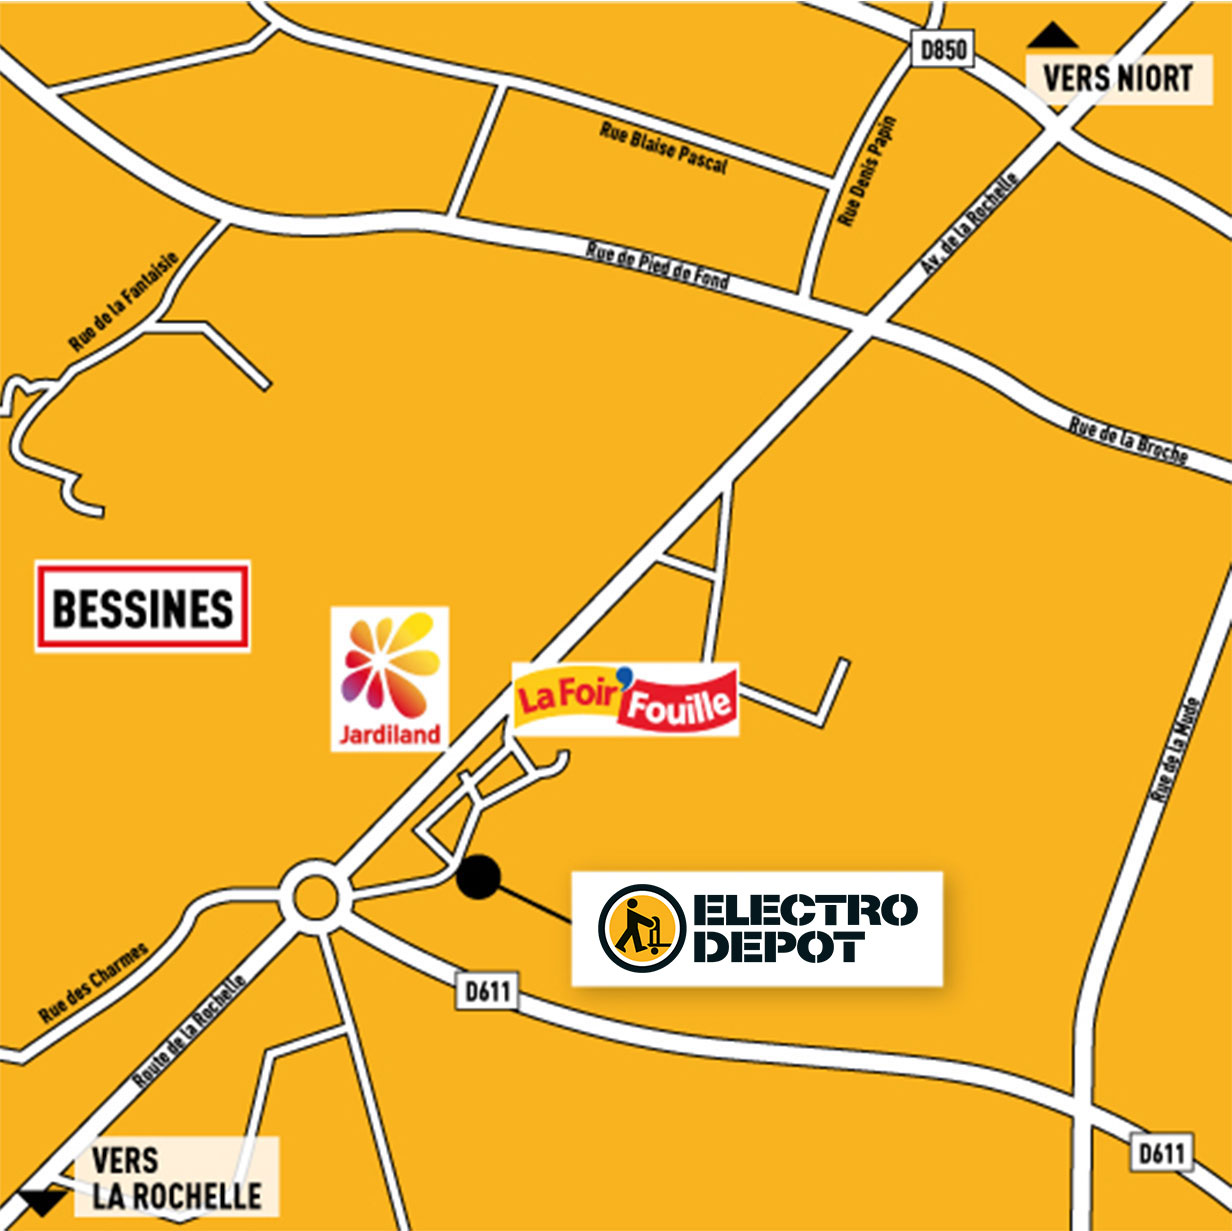 Magasin lectro m nager niort bessines electro d p t - Electro depot niort ...